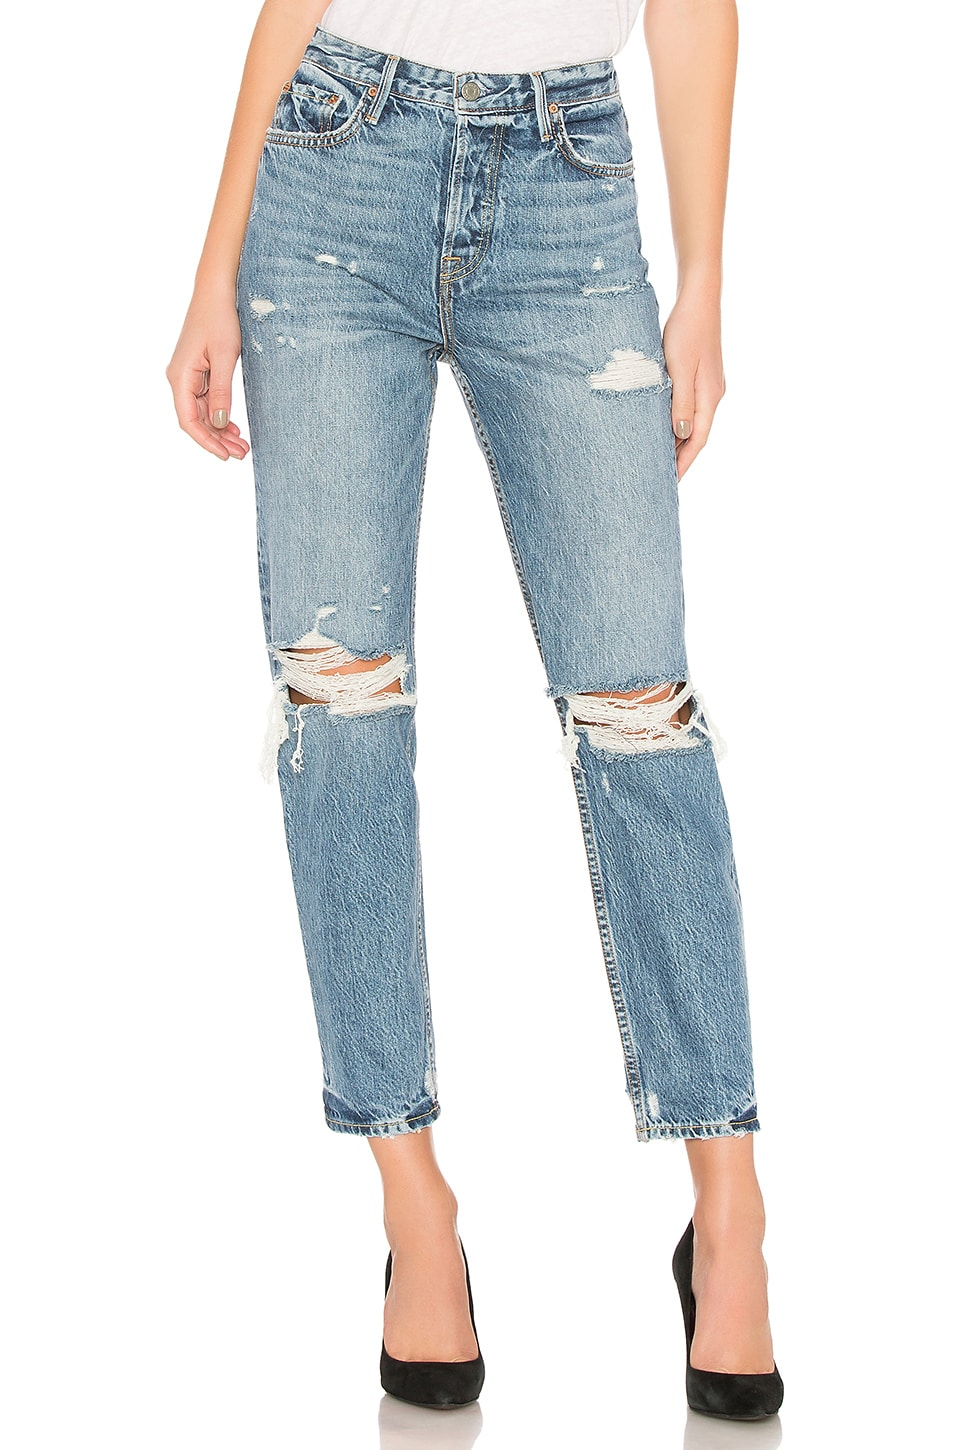 GRLFRND Devon High-Rise Boyfriend Jean in Up Side Down